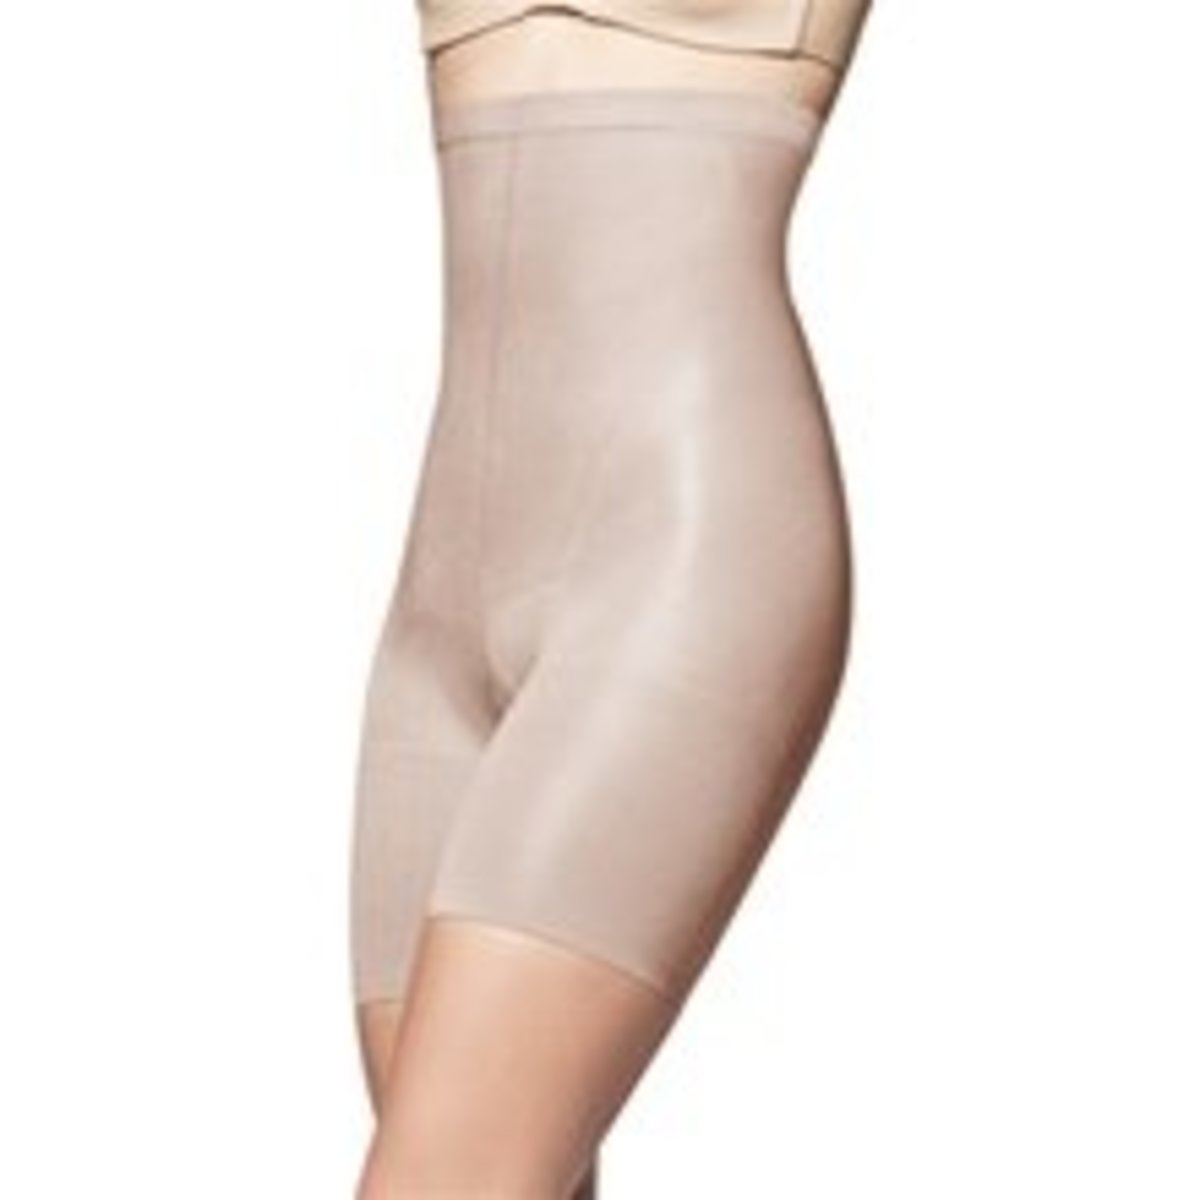 Mid thigh shapers are a must have for shapewear.